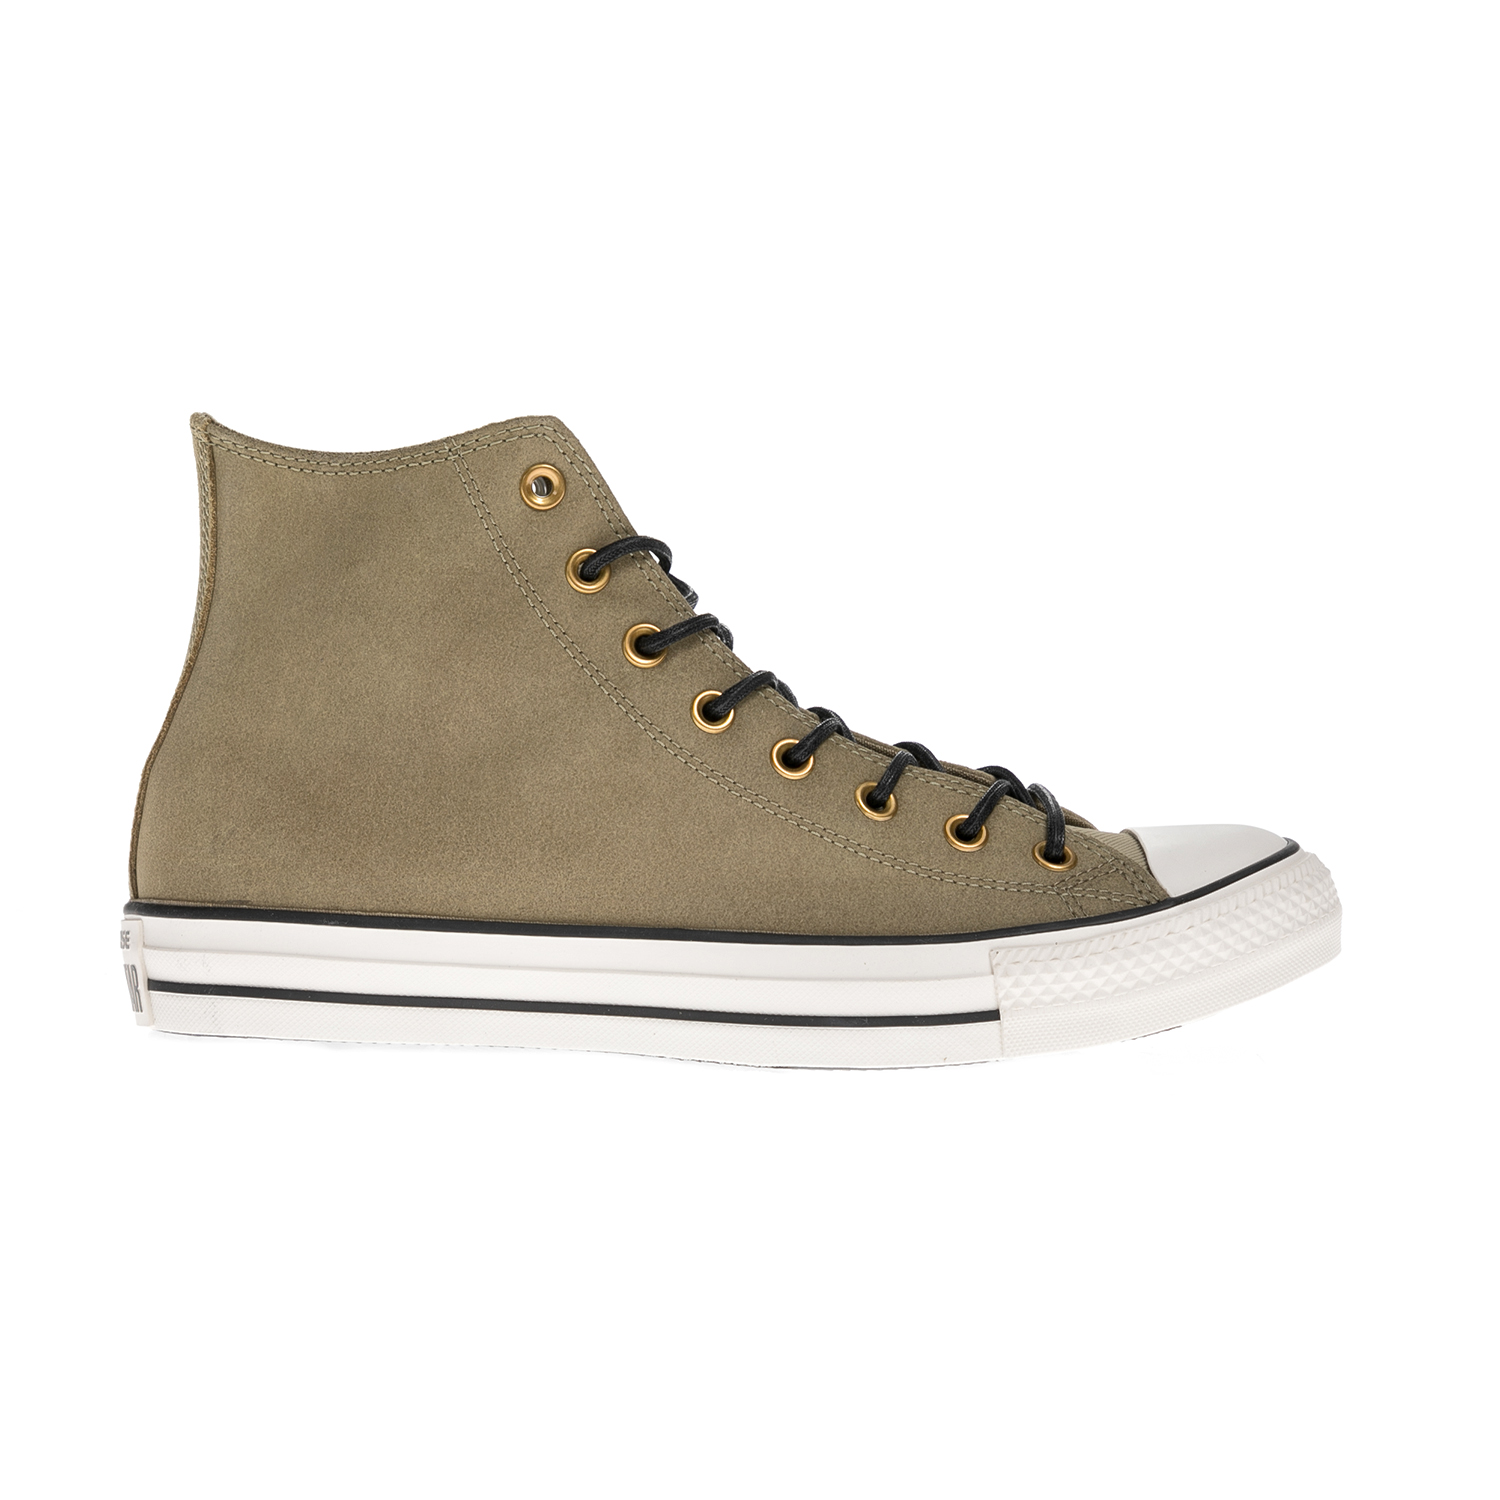 CONVERSE – Unisex παπούτσια Chuck Taylor All Star Hi χακί